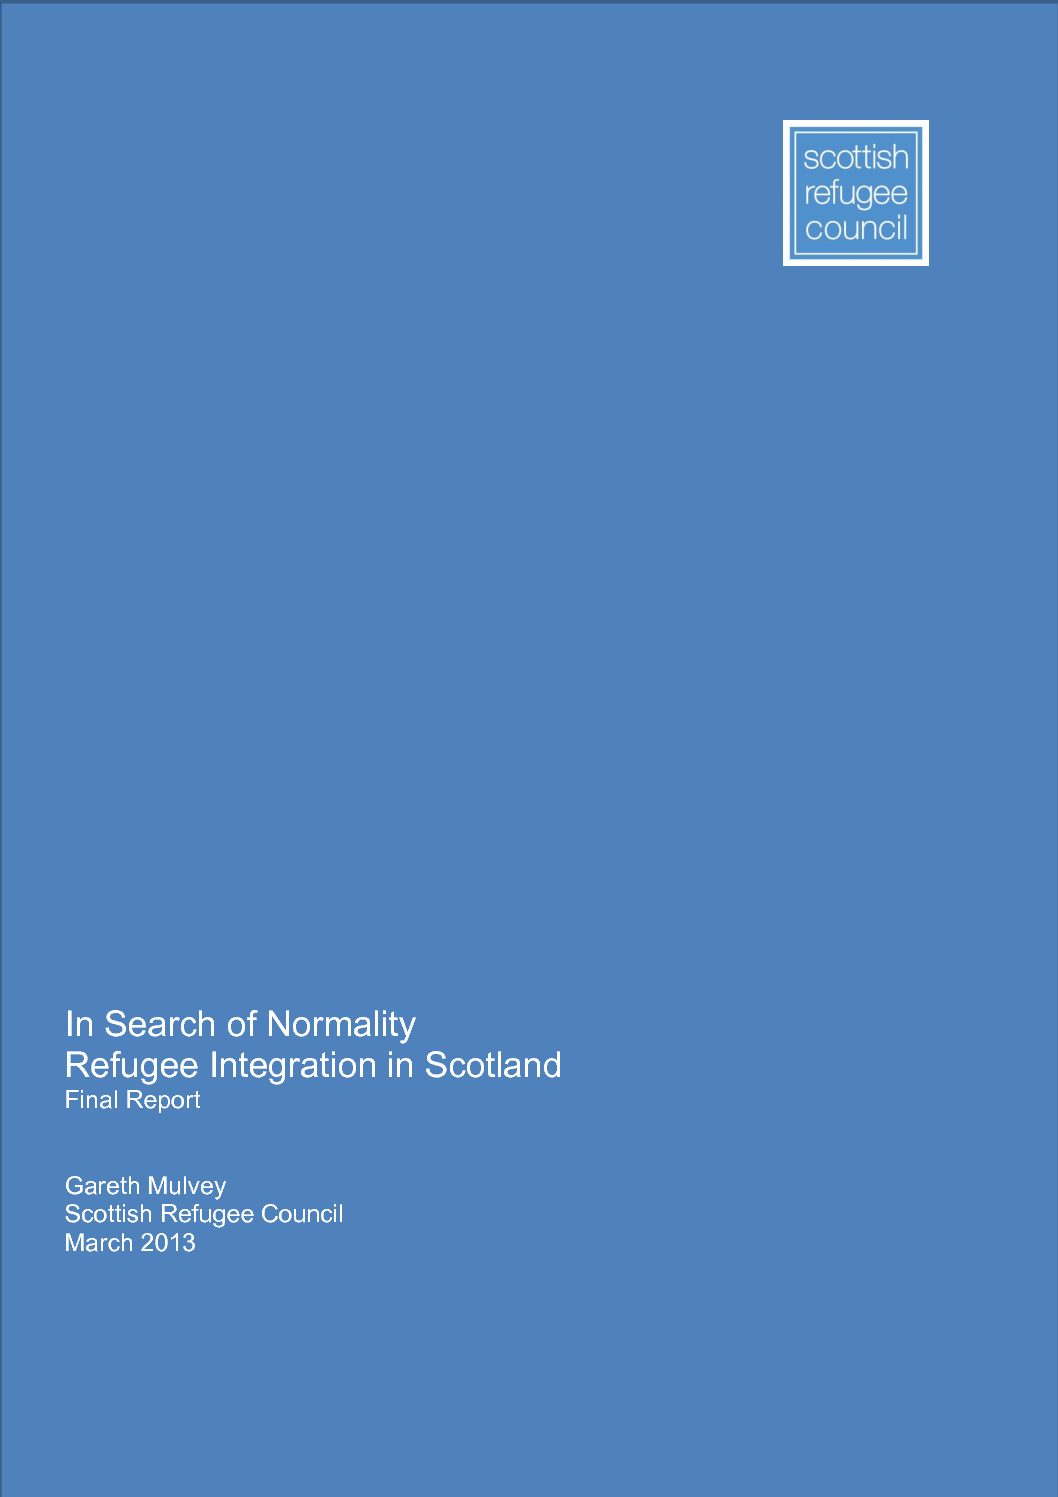 In-search-of-normality-Refugee-Integration-in-Scotland-Final-Report-PDF-pdf